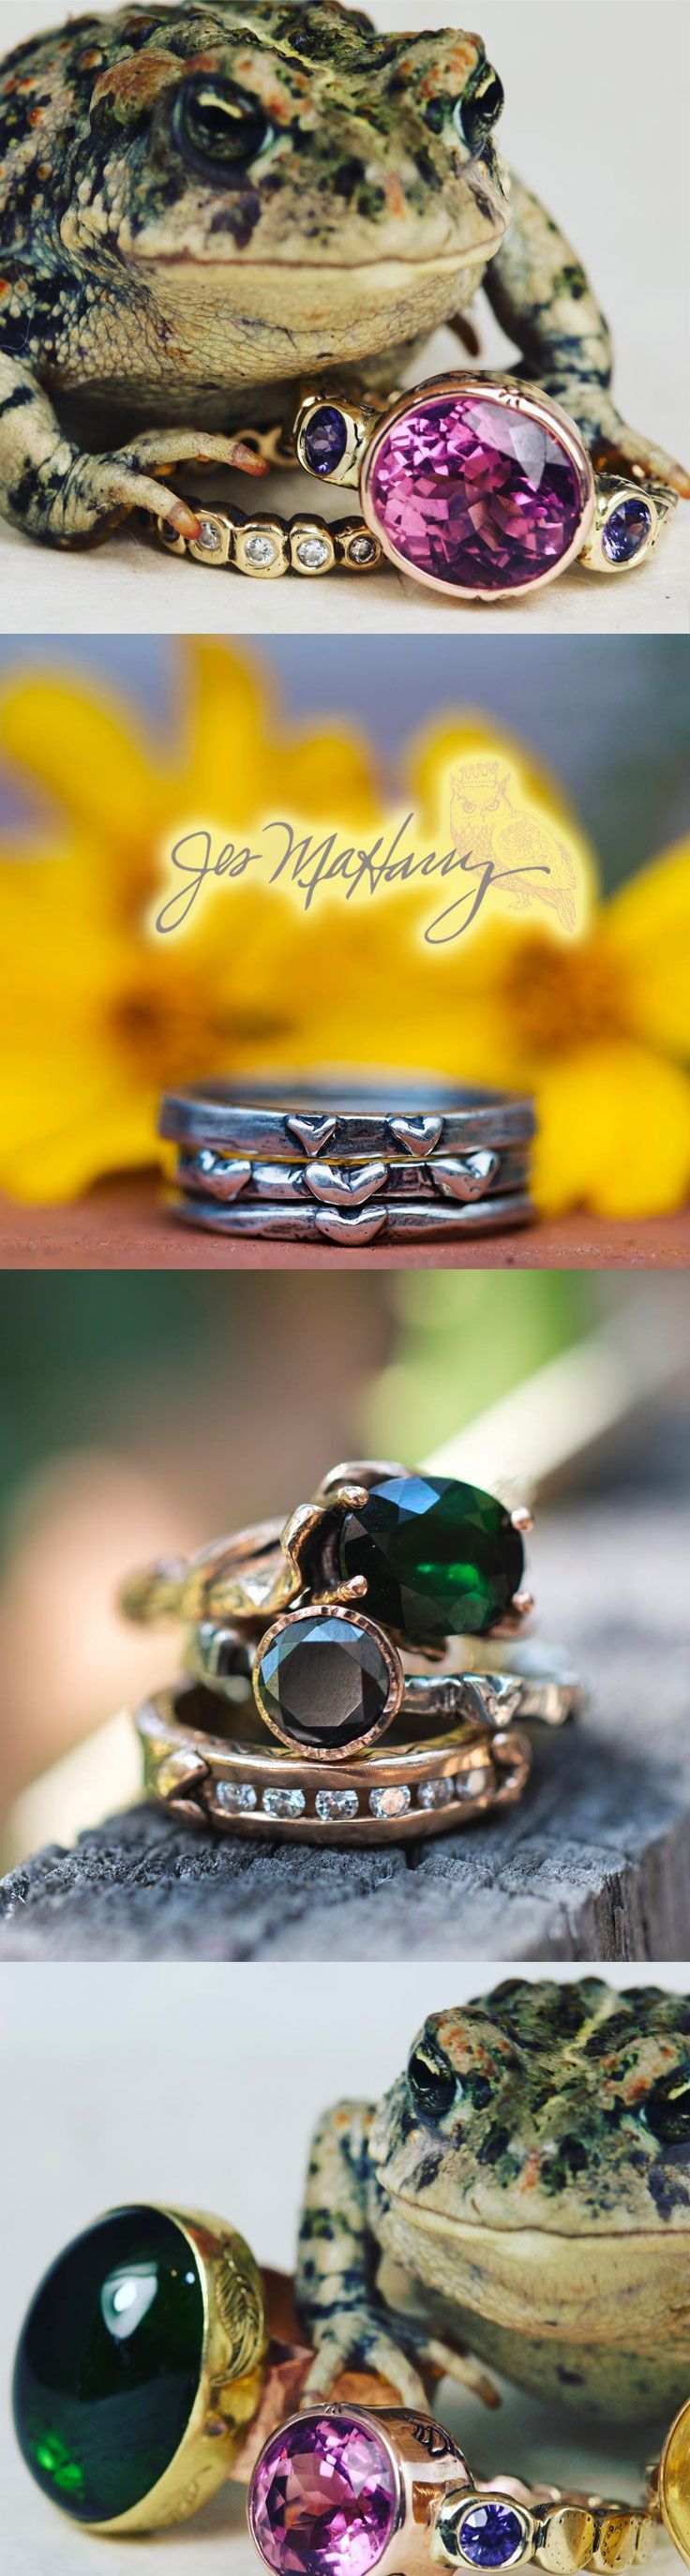 Artisan Rings - Unique Jewelry by Jes MaHarry